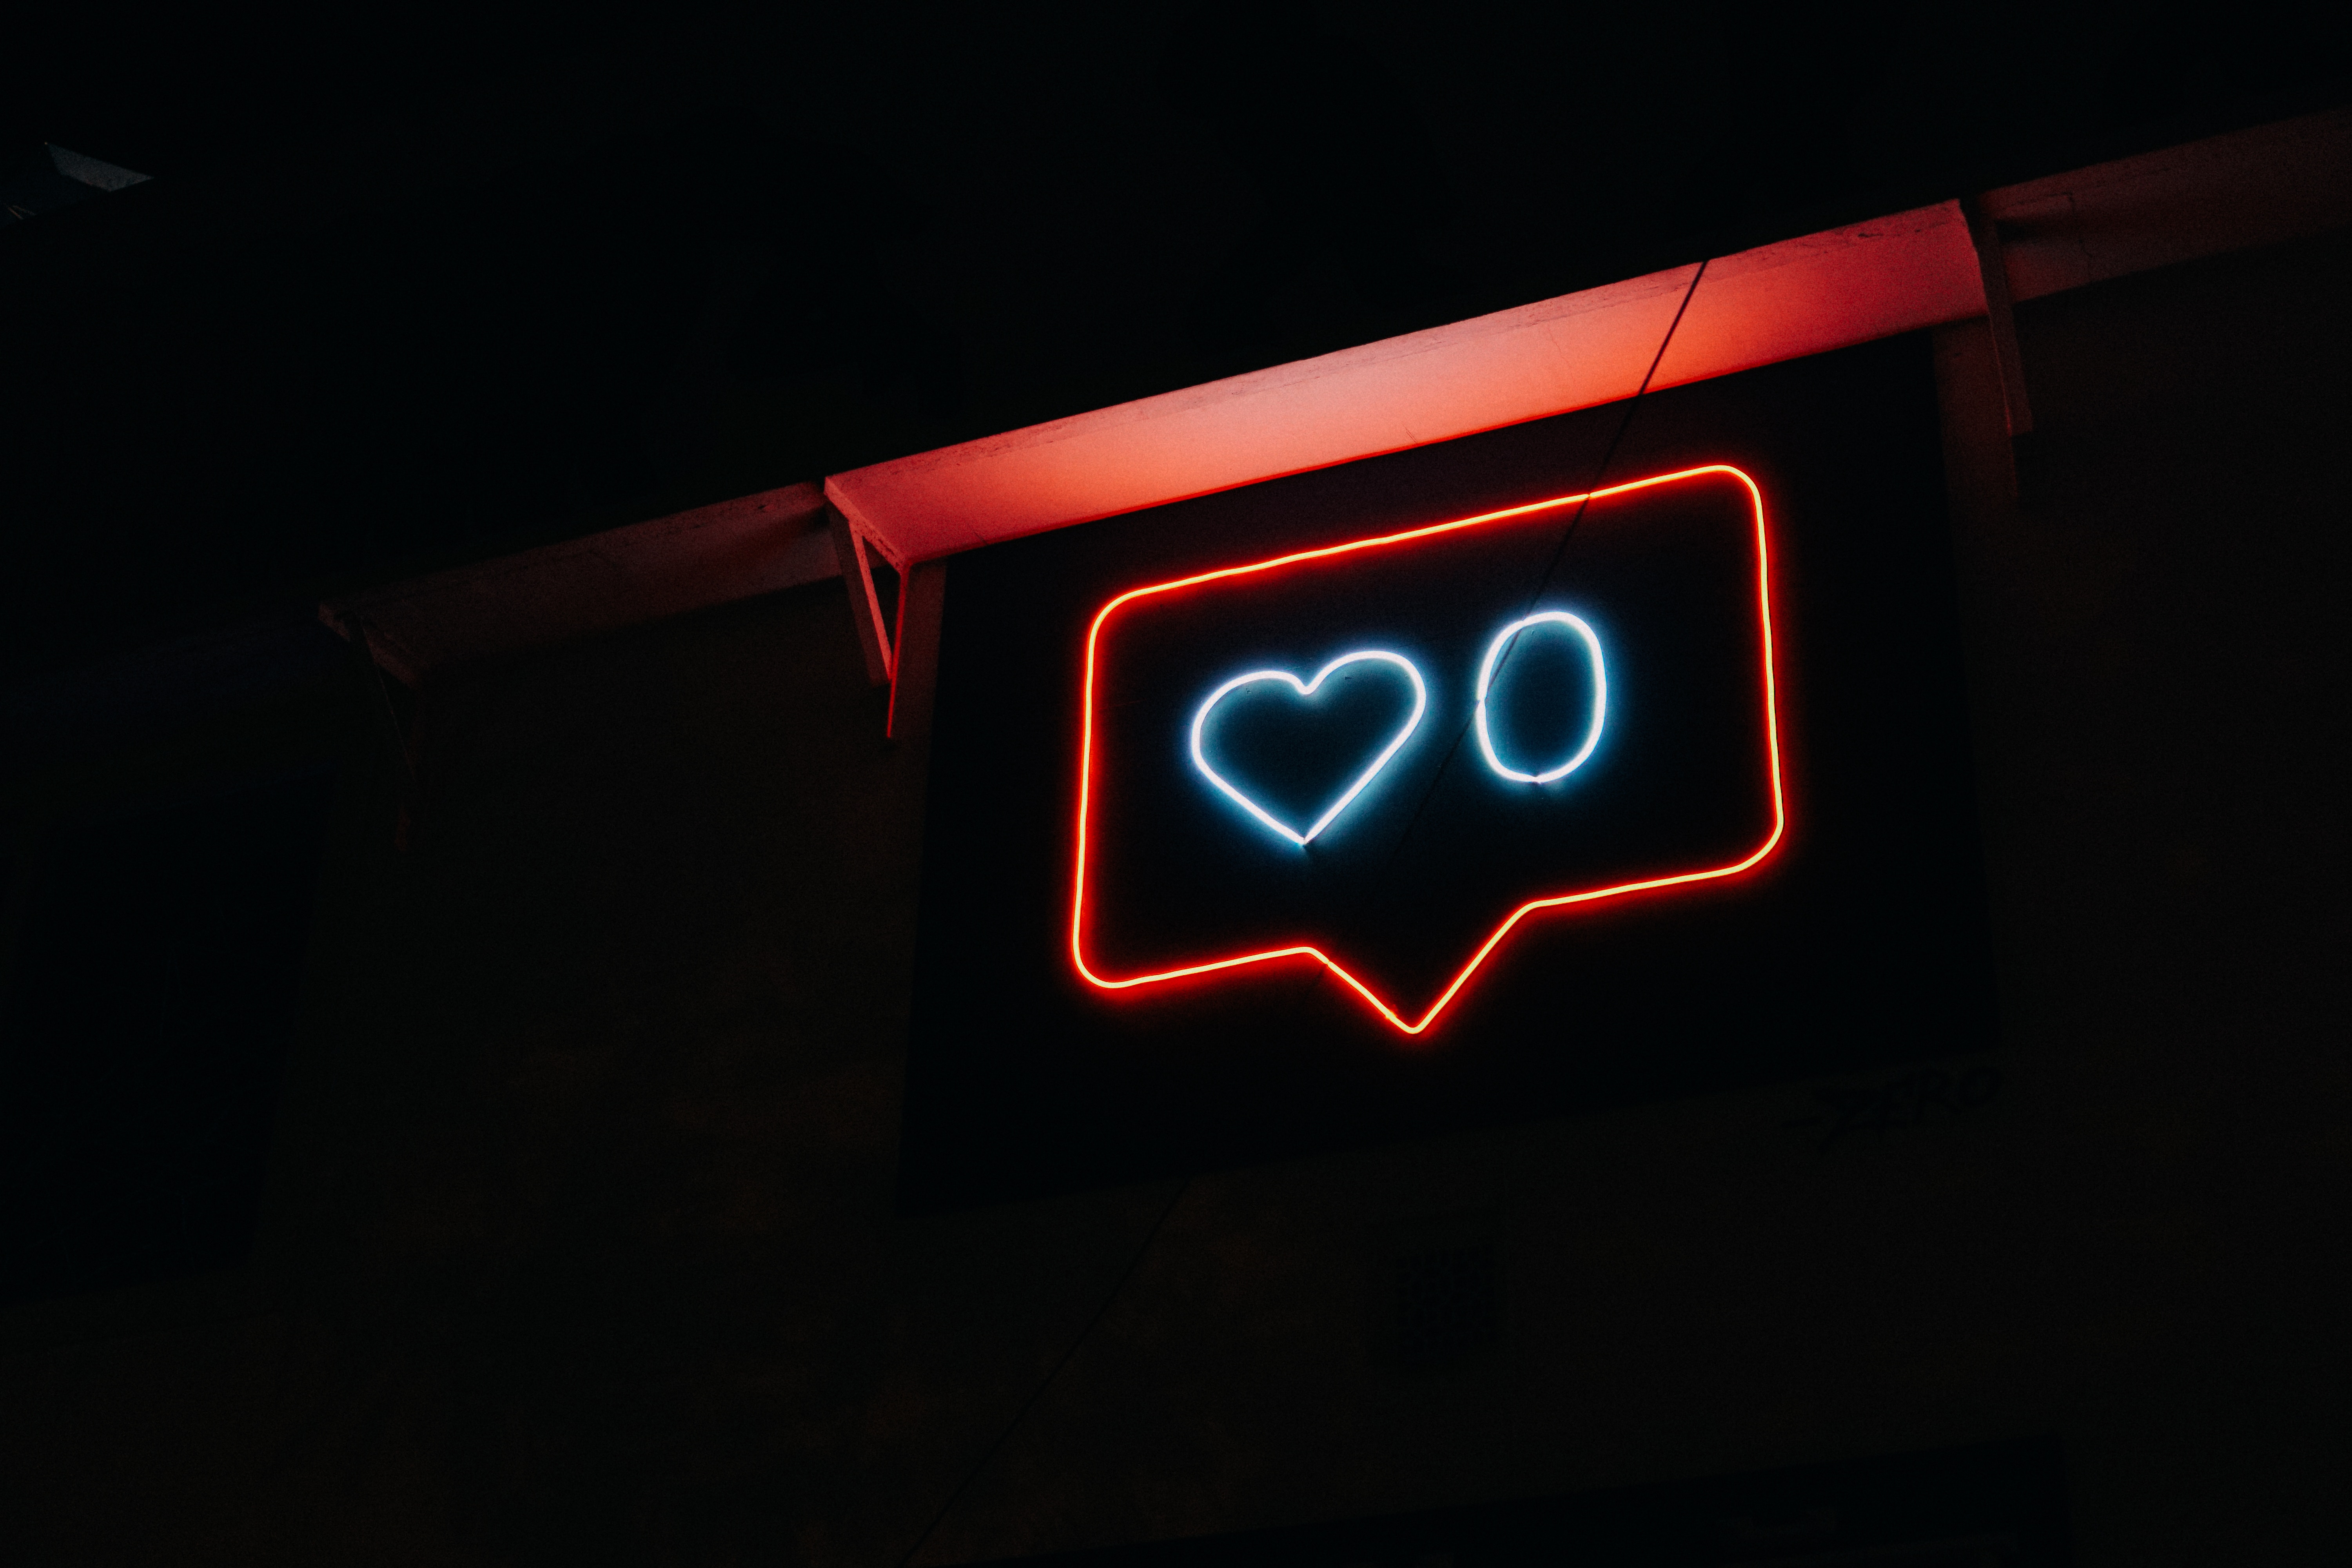 136257 download wallpaper Neon, Dark, Heart, Like screensavers and pictures for free